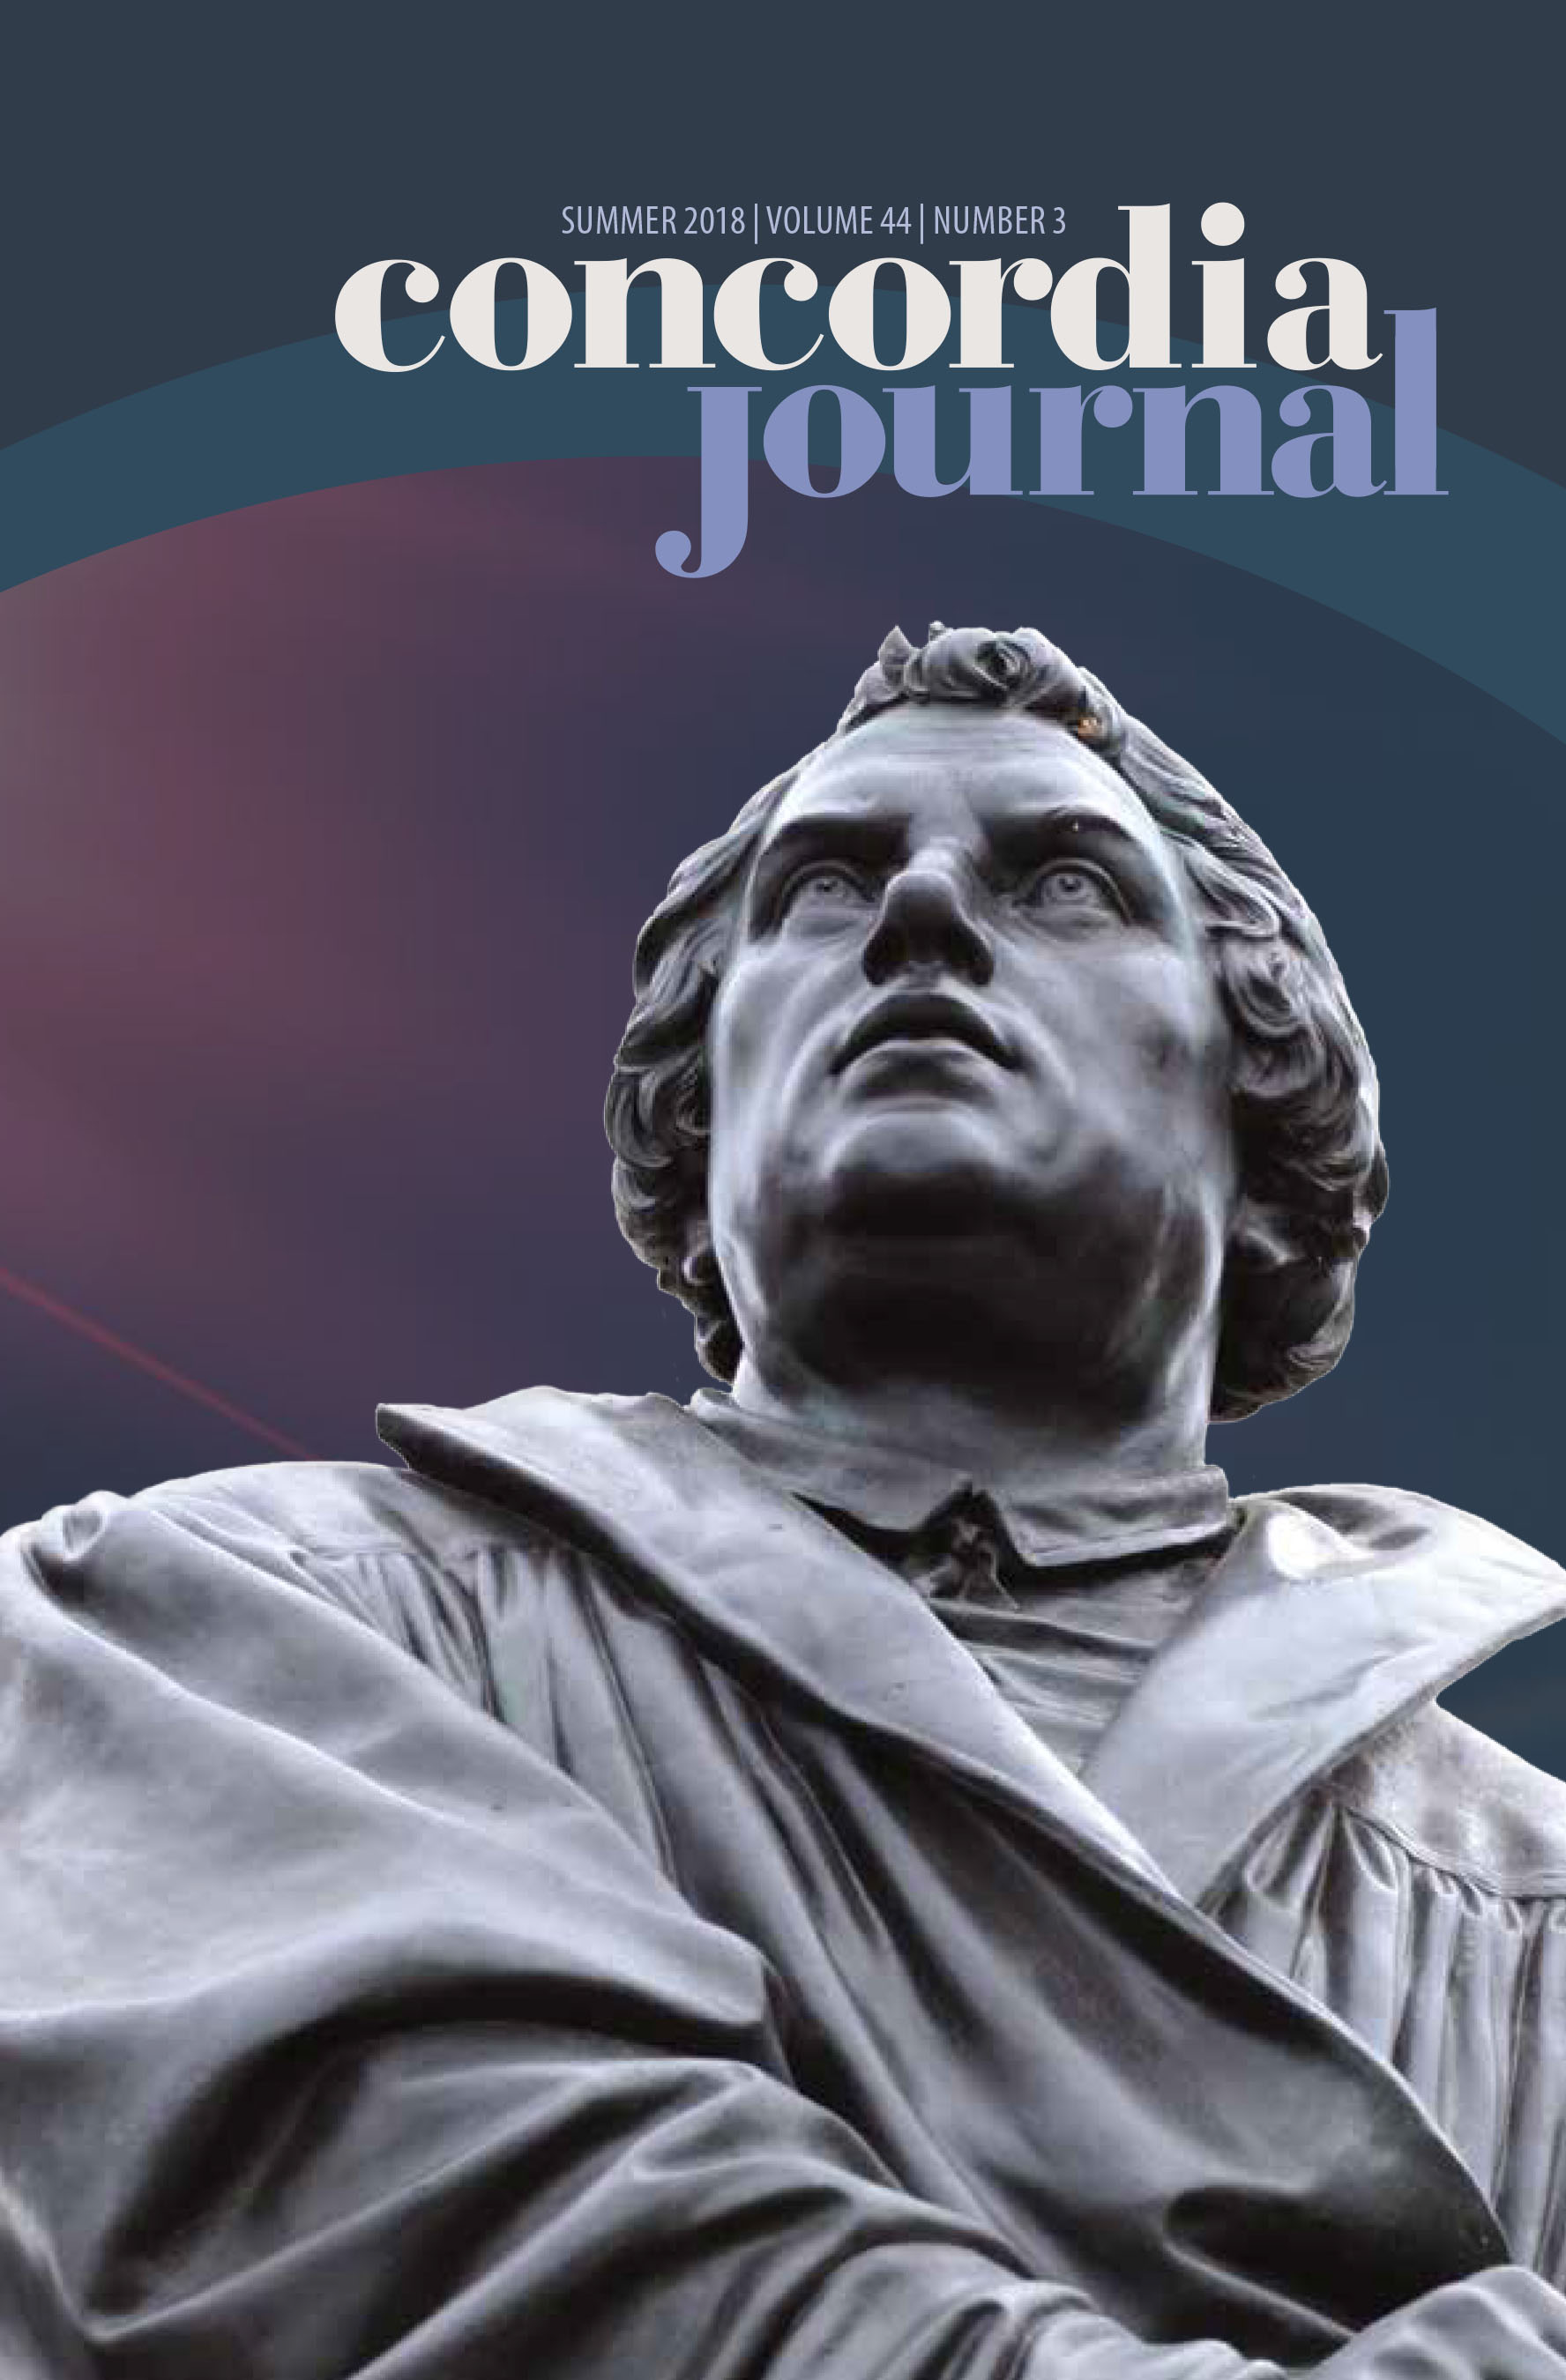 Concordia Journal, Summer 2018